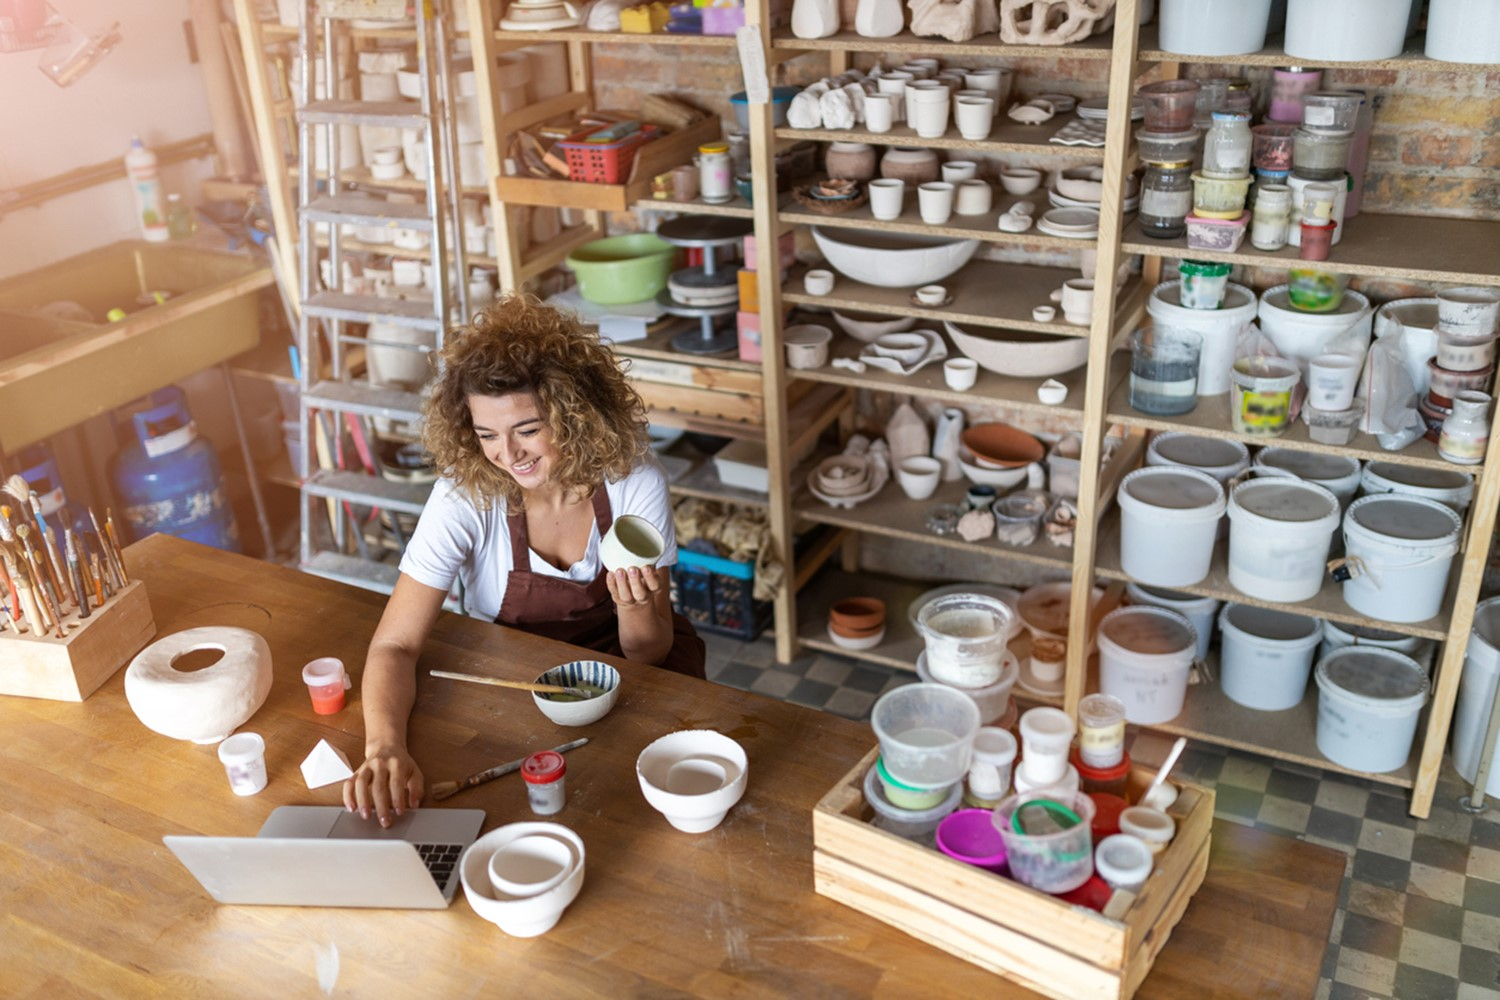 self employed woman surrounded by tools and materials